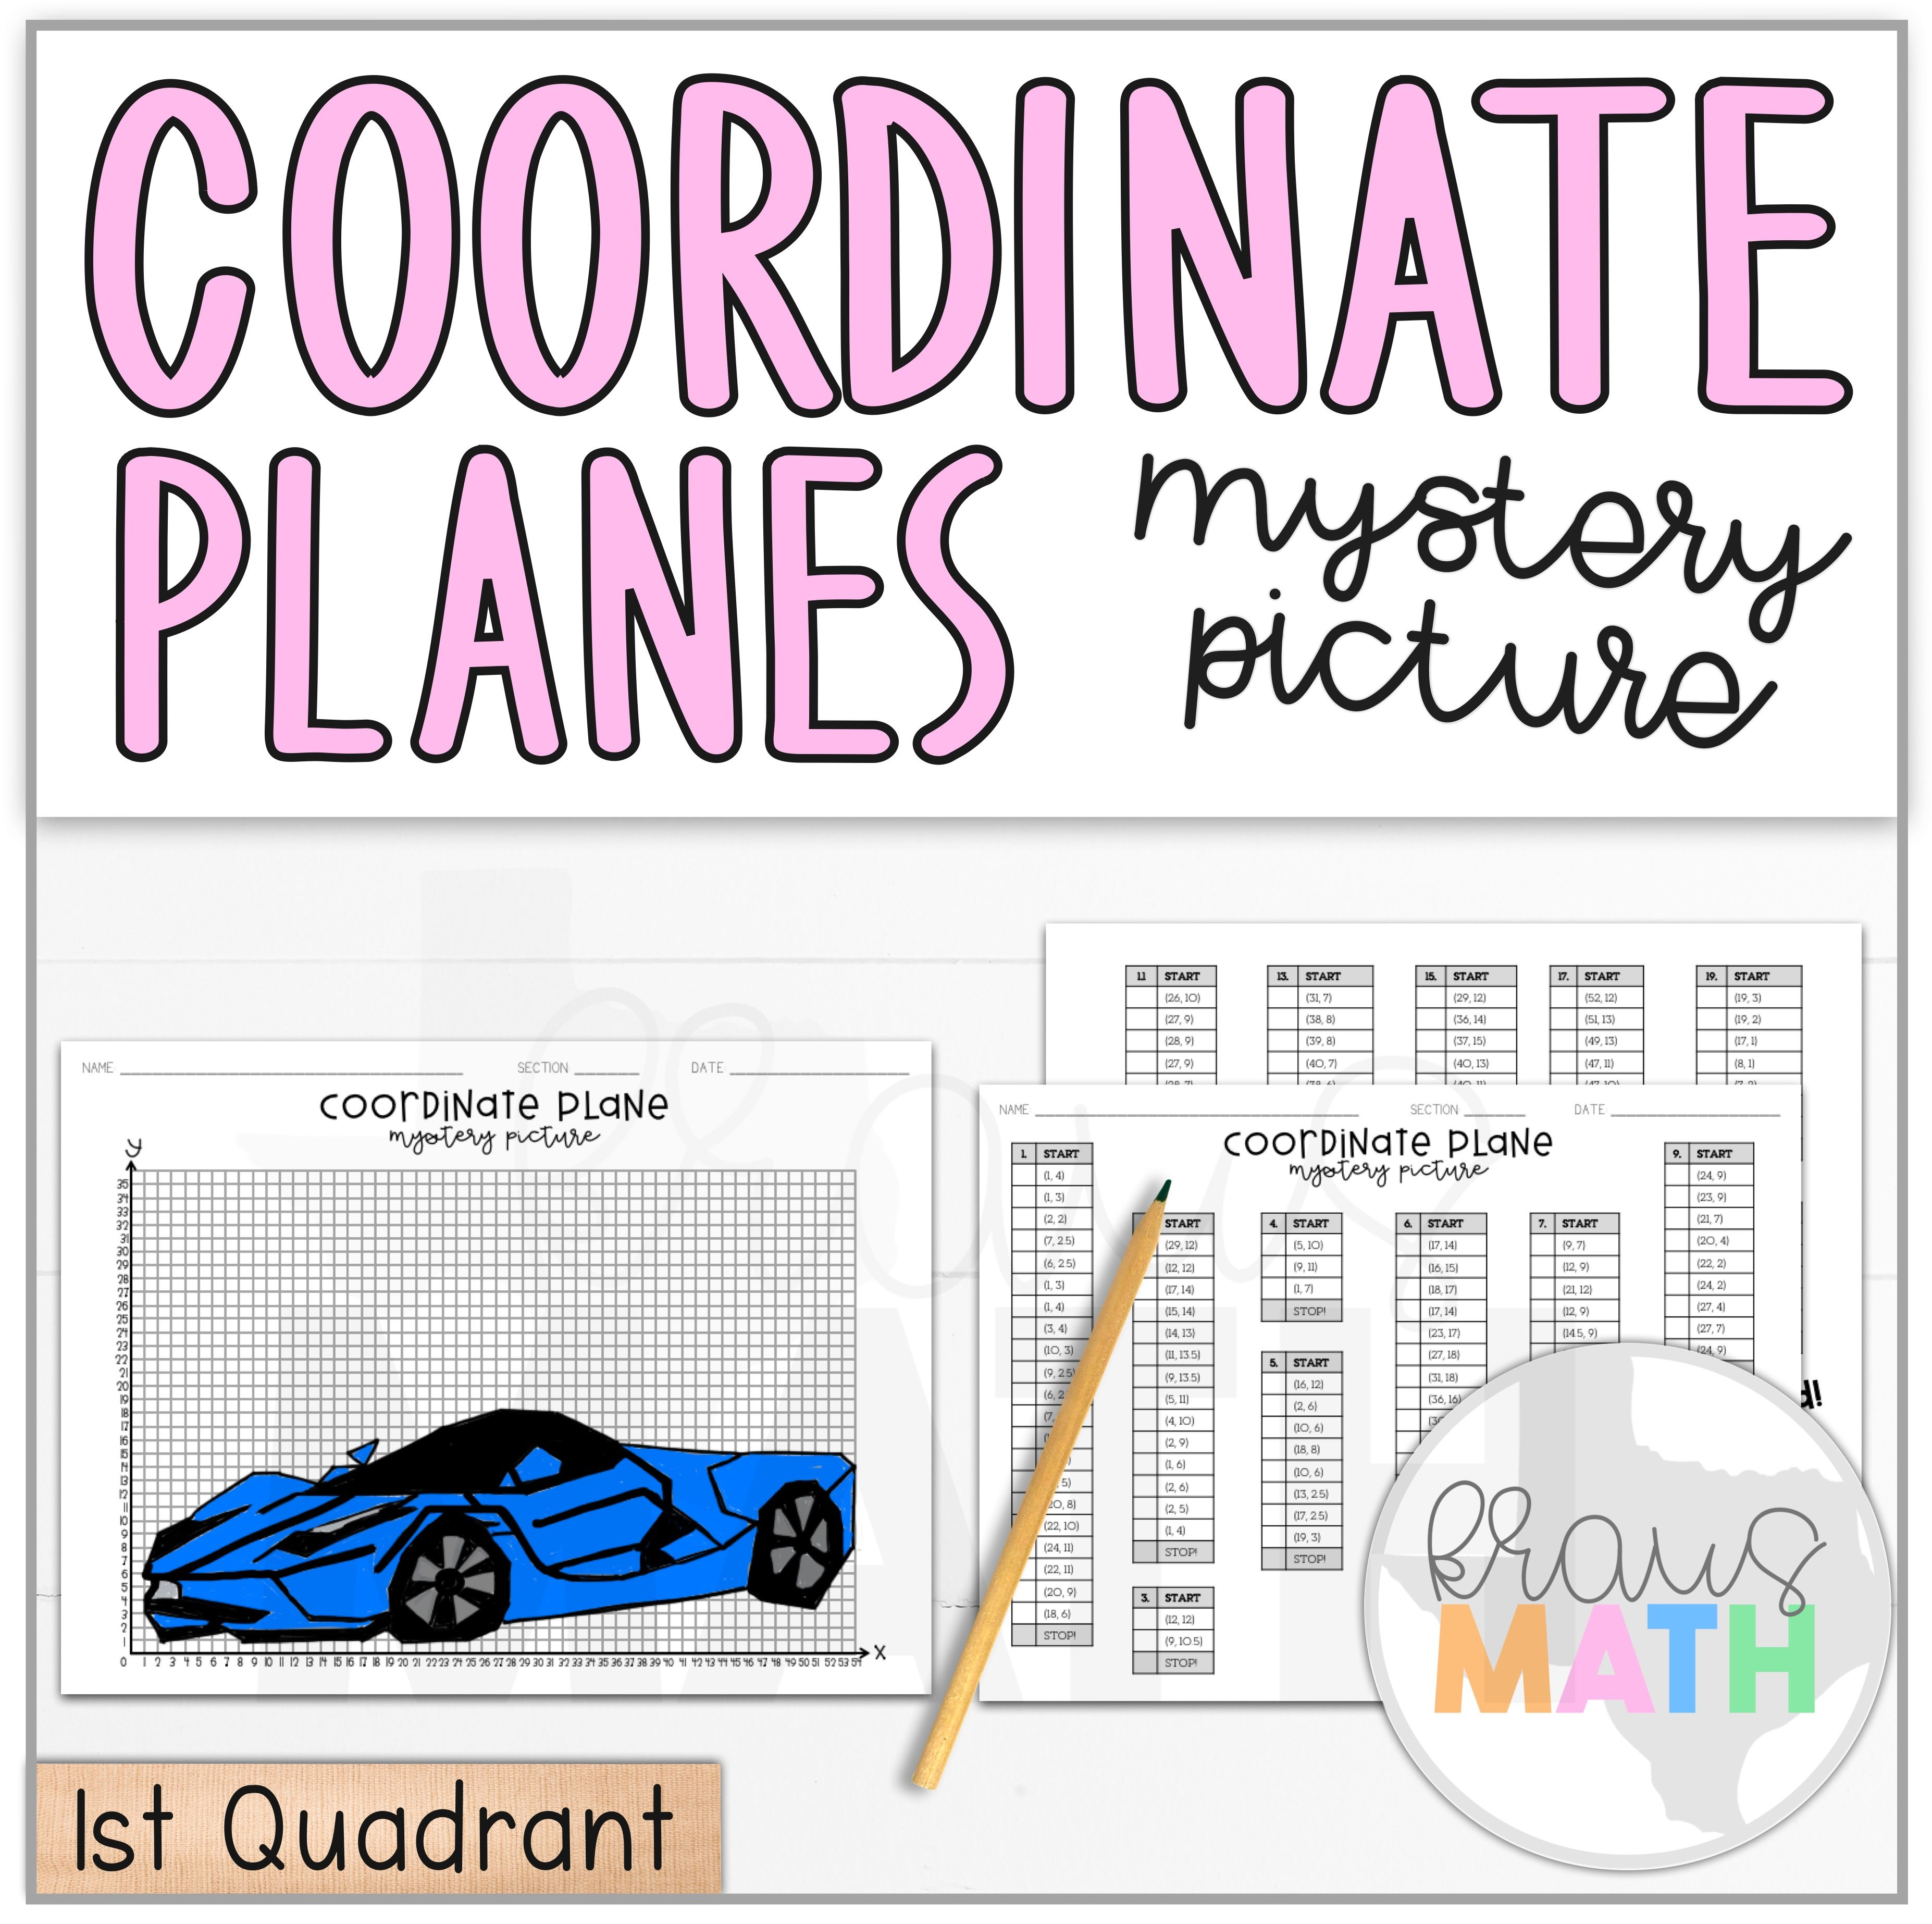 Sports Car Aston Martin Coordinate Plane Activity 1st